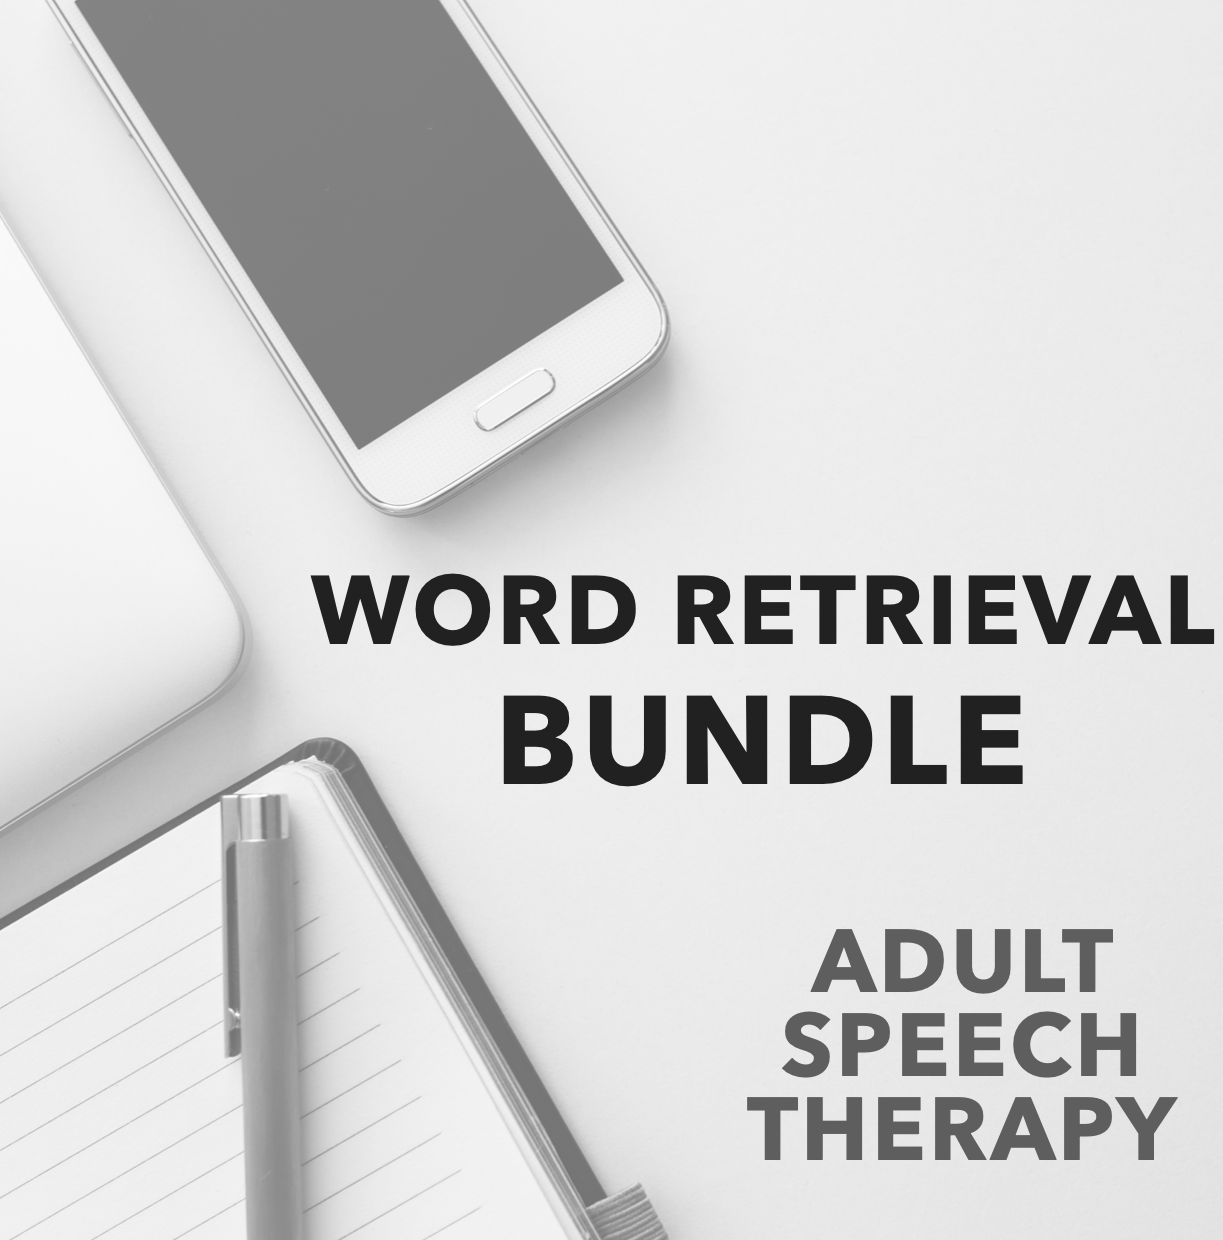 A Look Inside The Word Retrieval Bundle